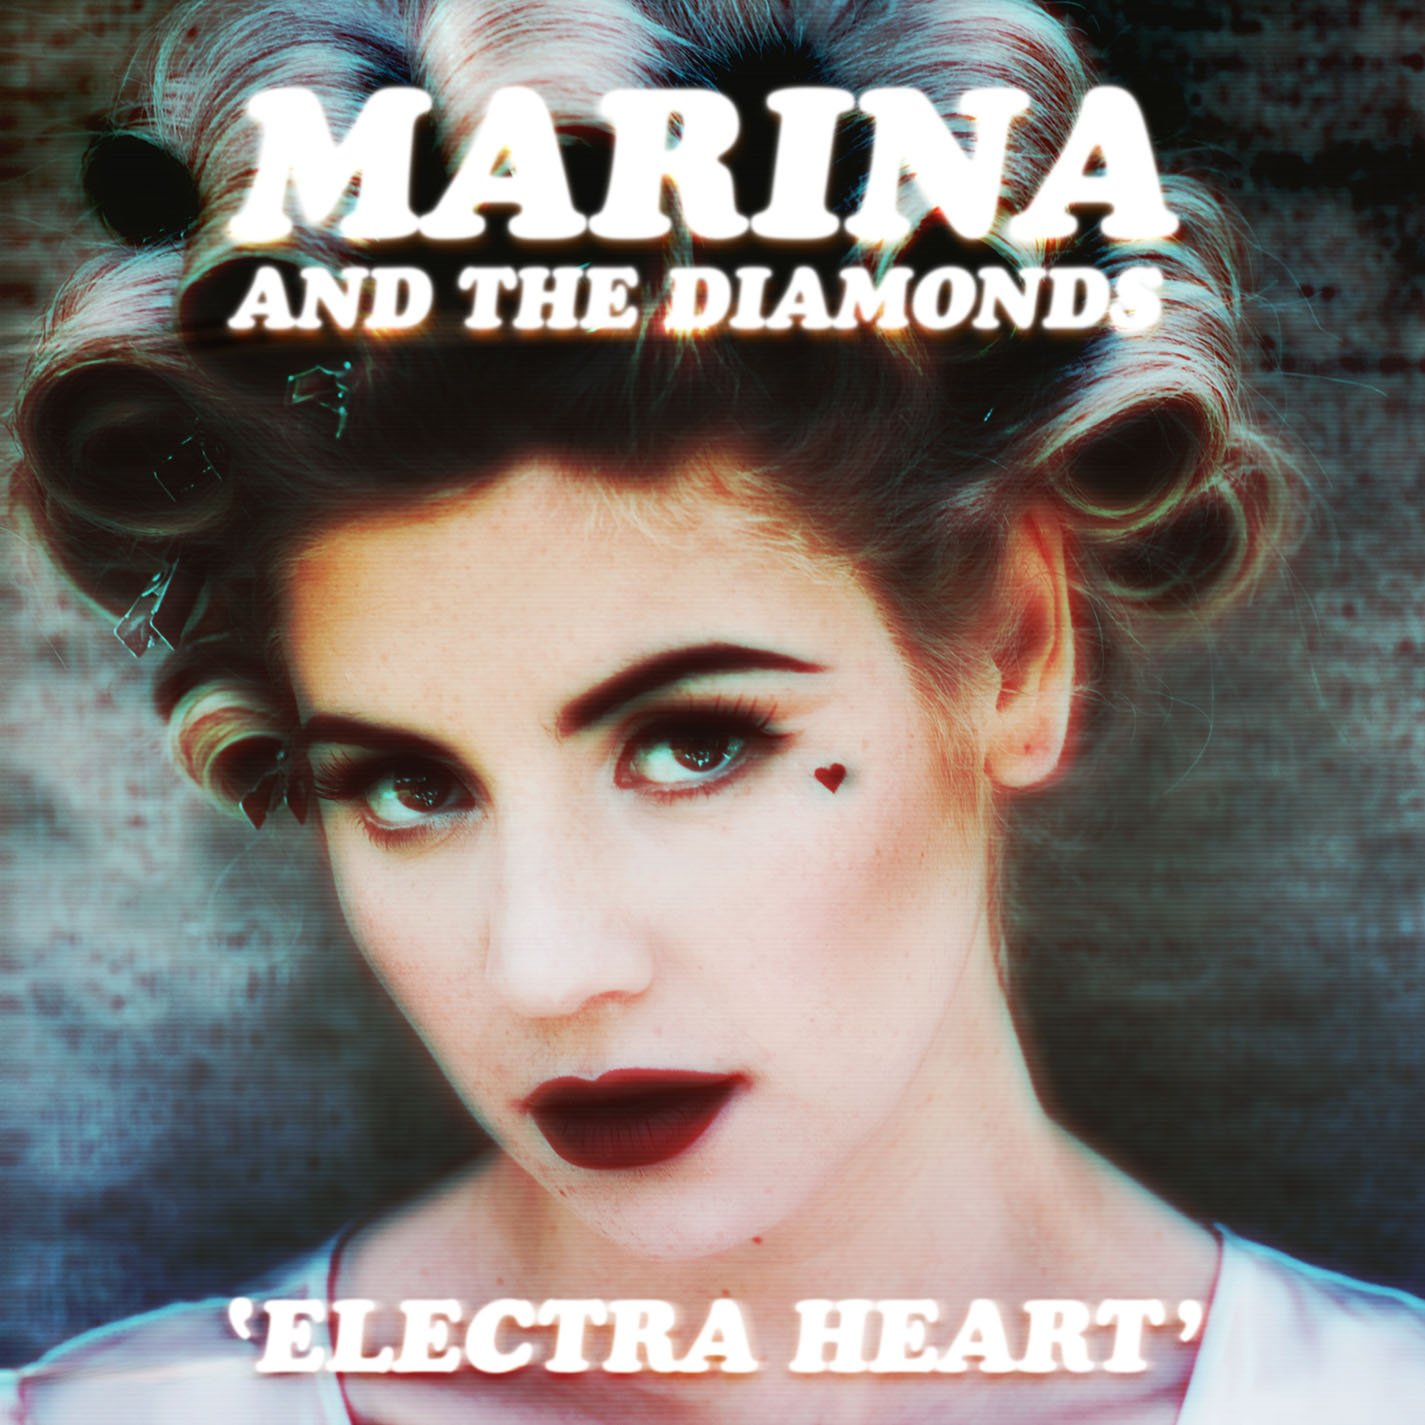 An image of the cover of the album 'Electra Heart', showing a young woman wearing hair rollers, with a small heart drawn with makeup just below her left eye, as if a tear.